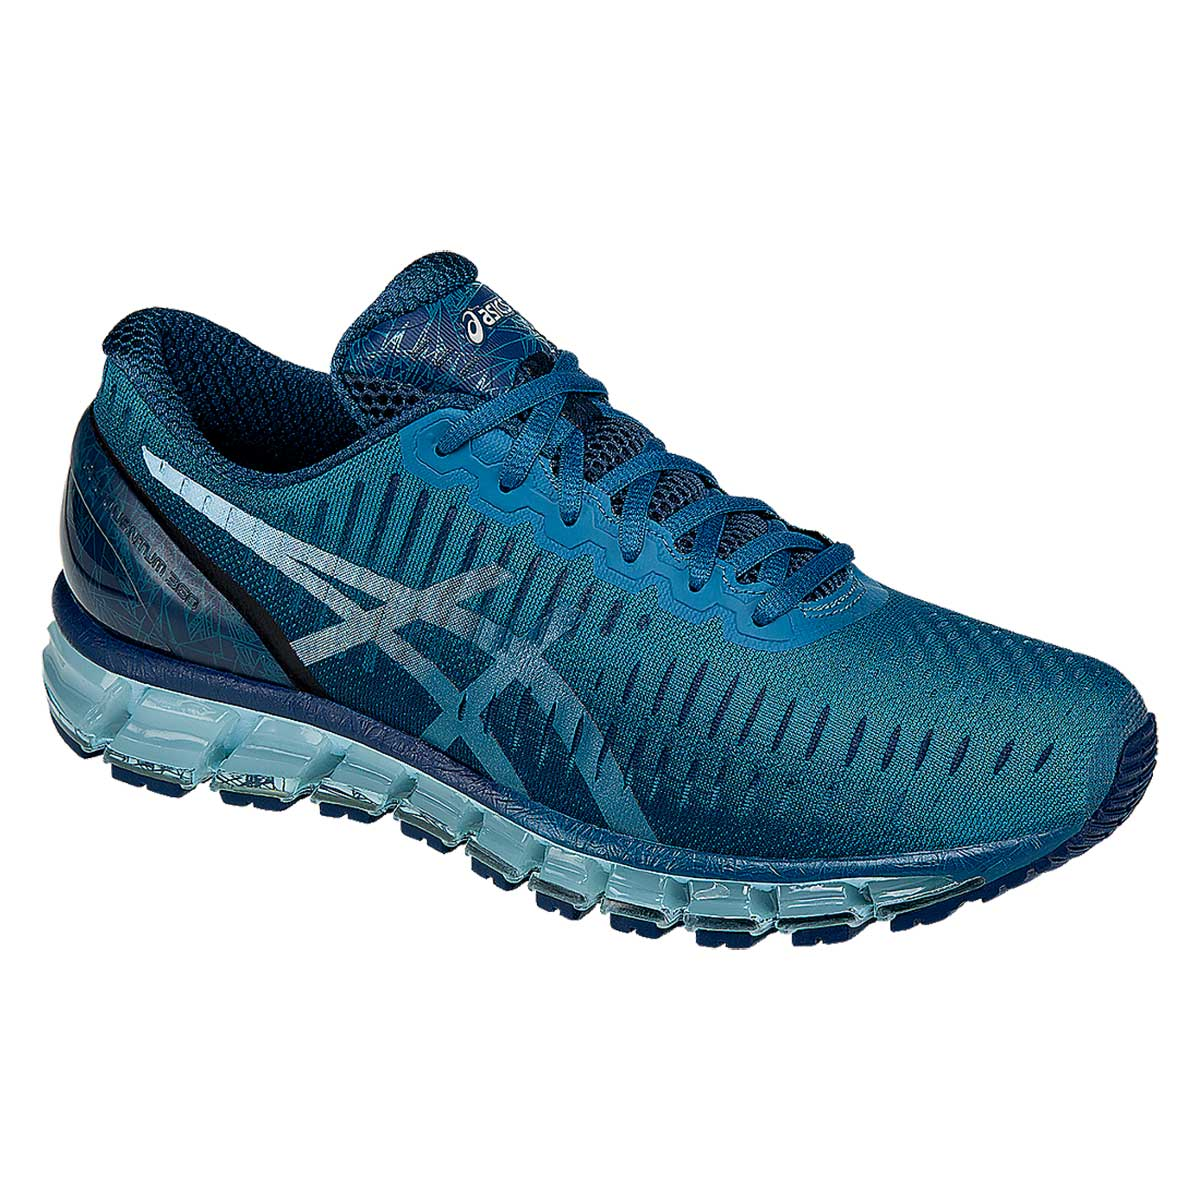 Running Shoes, Running, Buy, Asics, Asics Gel Quantum 360 Running Shoes  (Ocean/Blue/Ink)